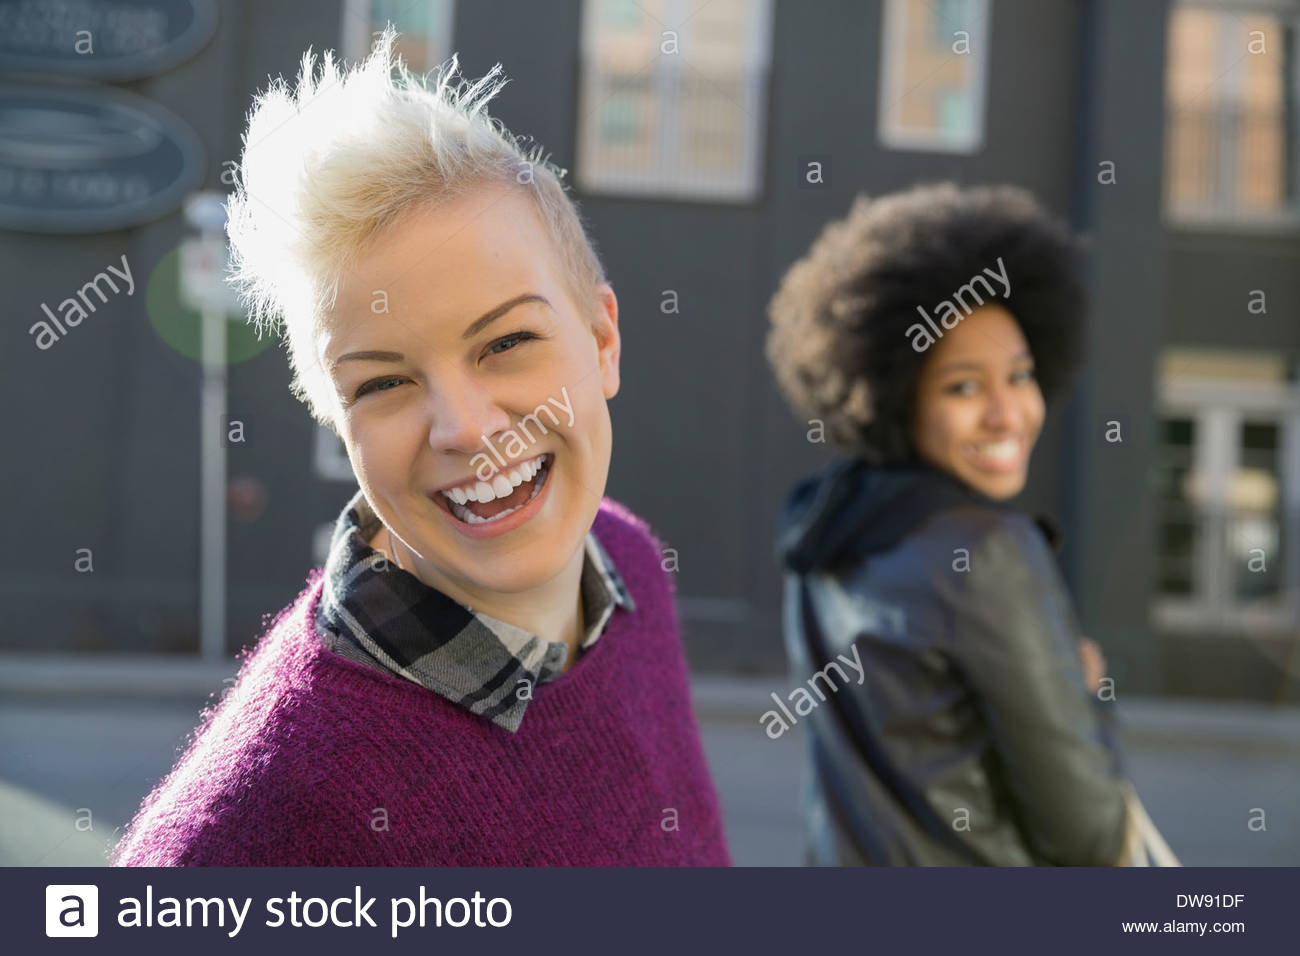 Portrait of smiling woman on city street Photo Stock